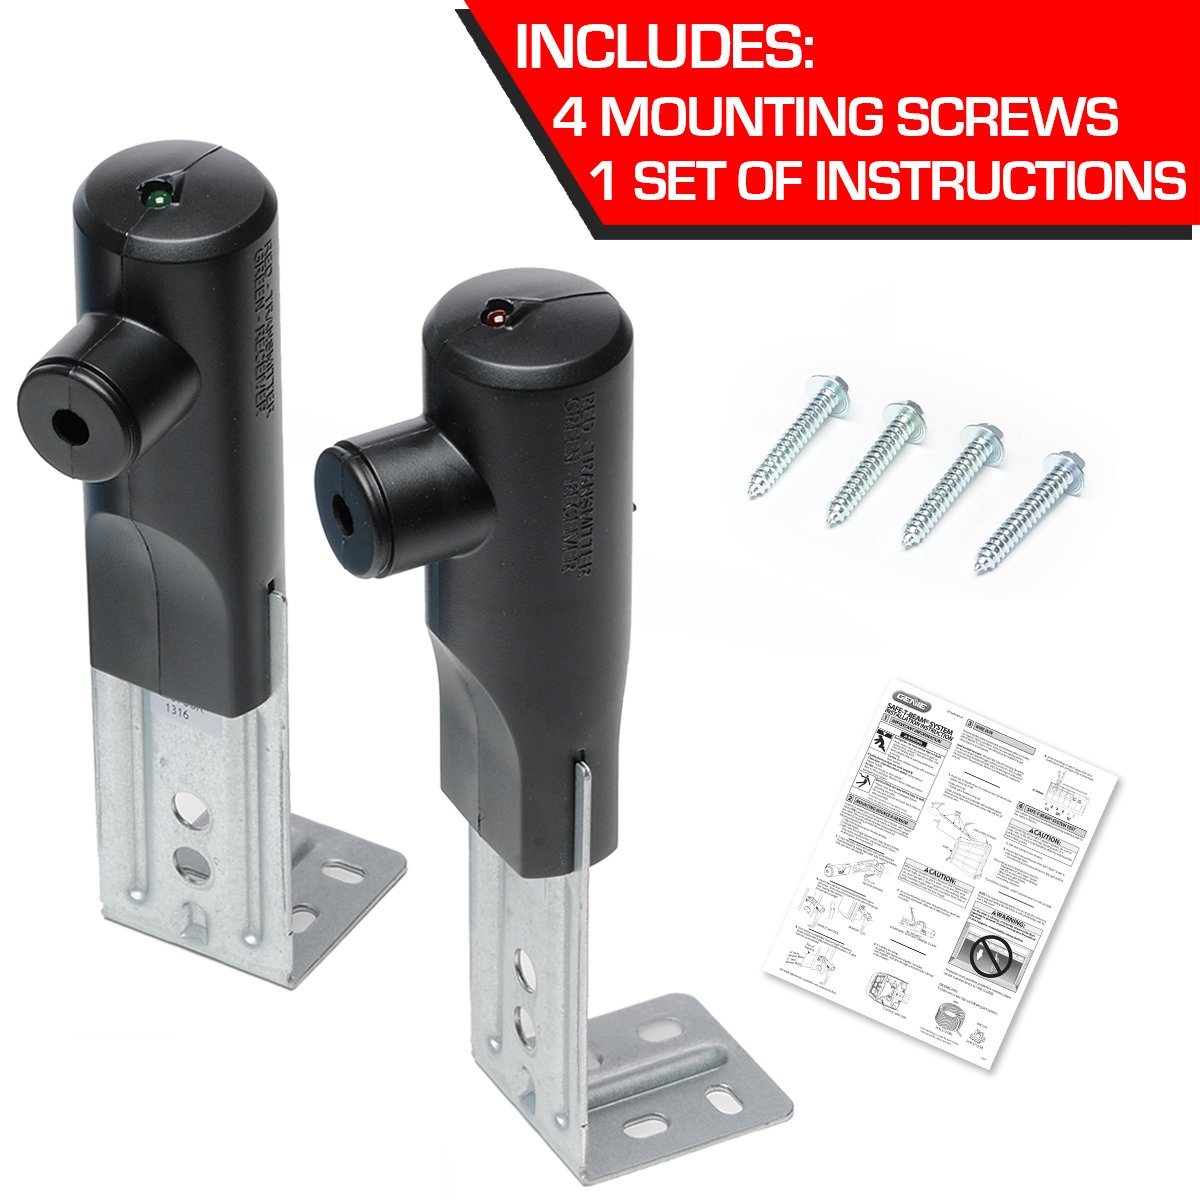 Genie Safe T Beam Garage Door Safety Beams Set Replacement Kit For Powermax 1200 Wiring Diagram Openers Security And Surveillance Products